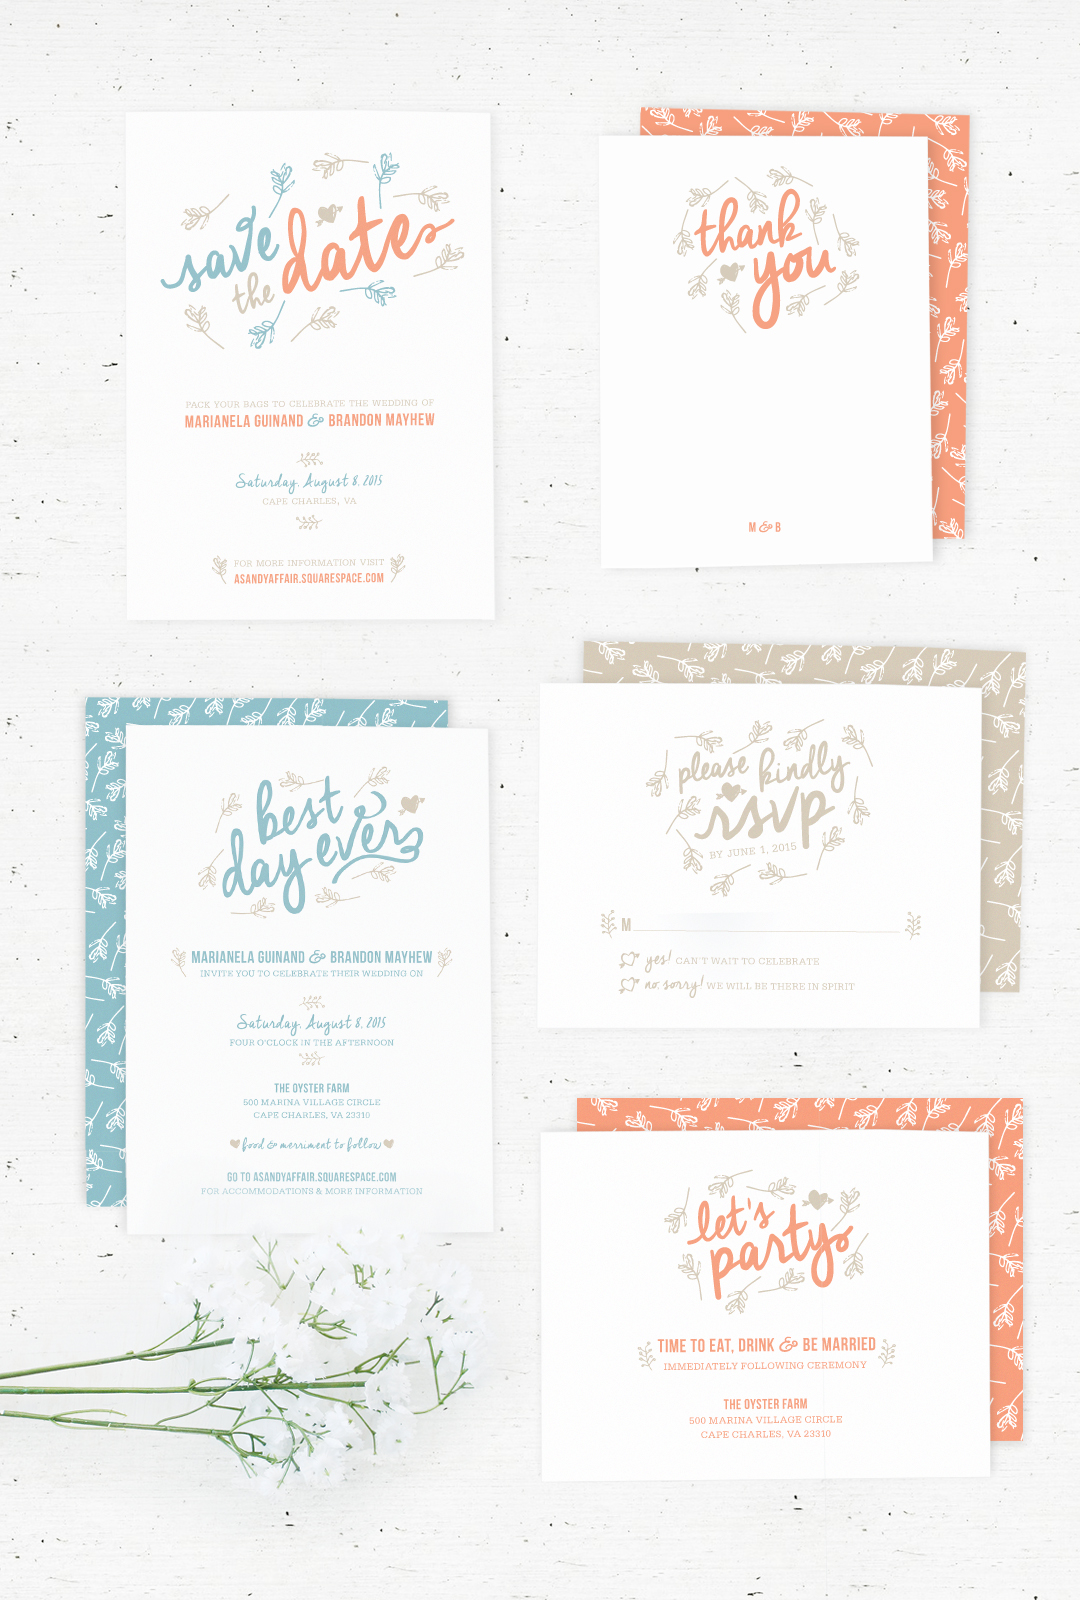 Selling on Etsy! Wedding Stationary Suite